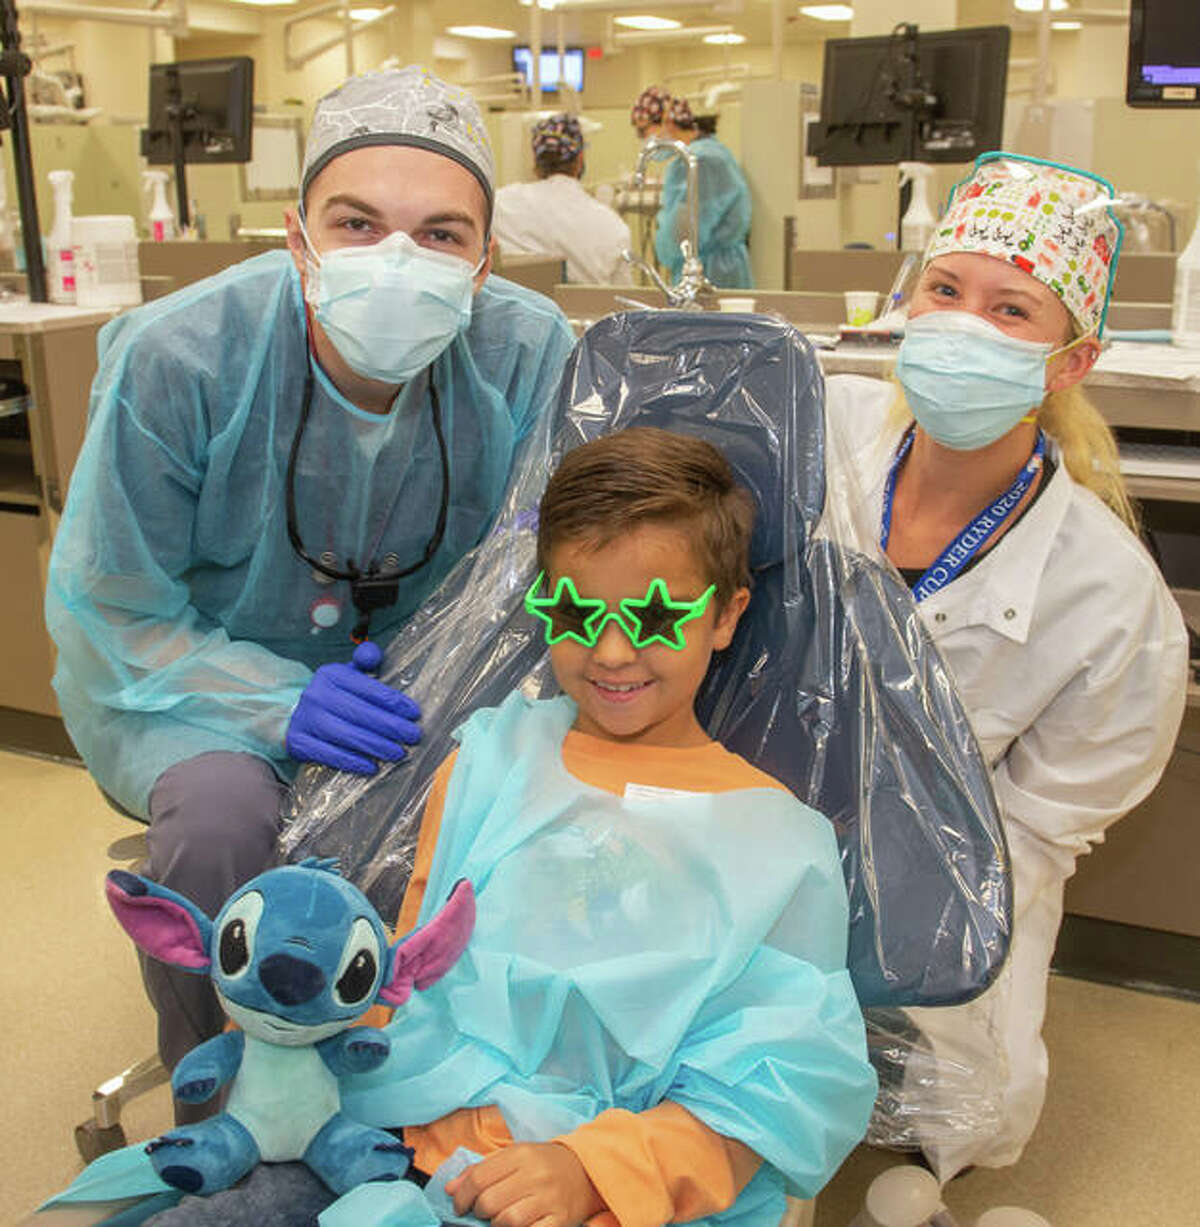 A child receives dental care during the SIU SDM's Give Kids a Smile Day event on Oct. 11. A record number of 126 children received treatments valued at more than $61,000 on Monday.